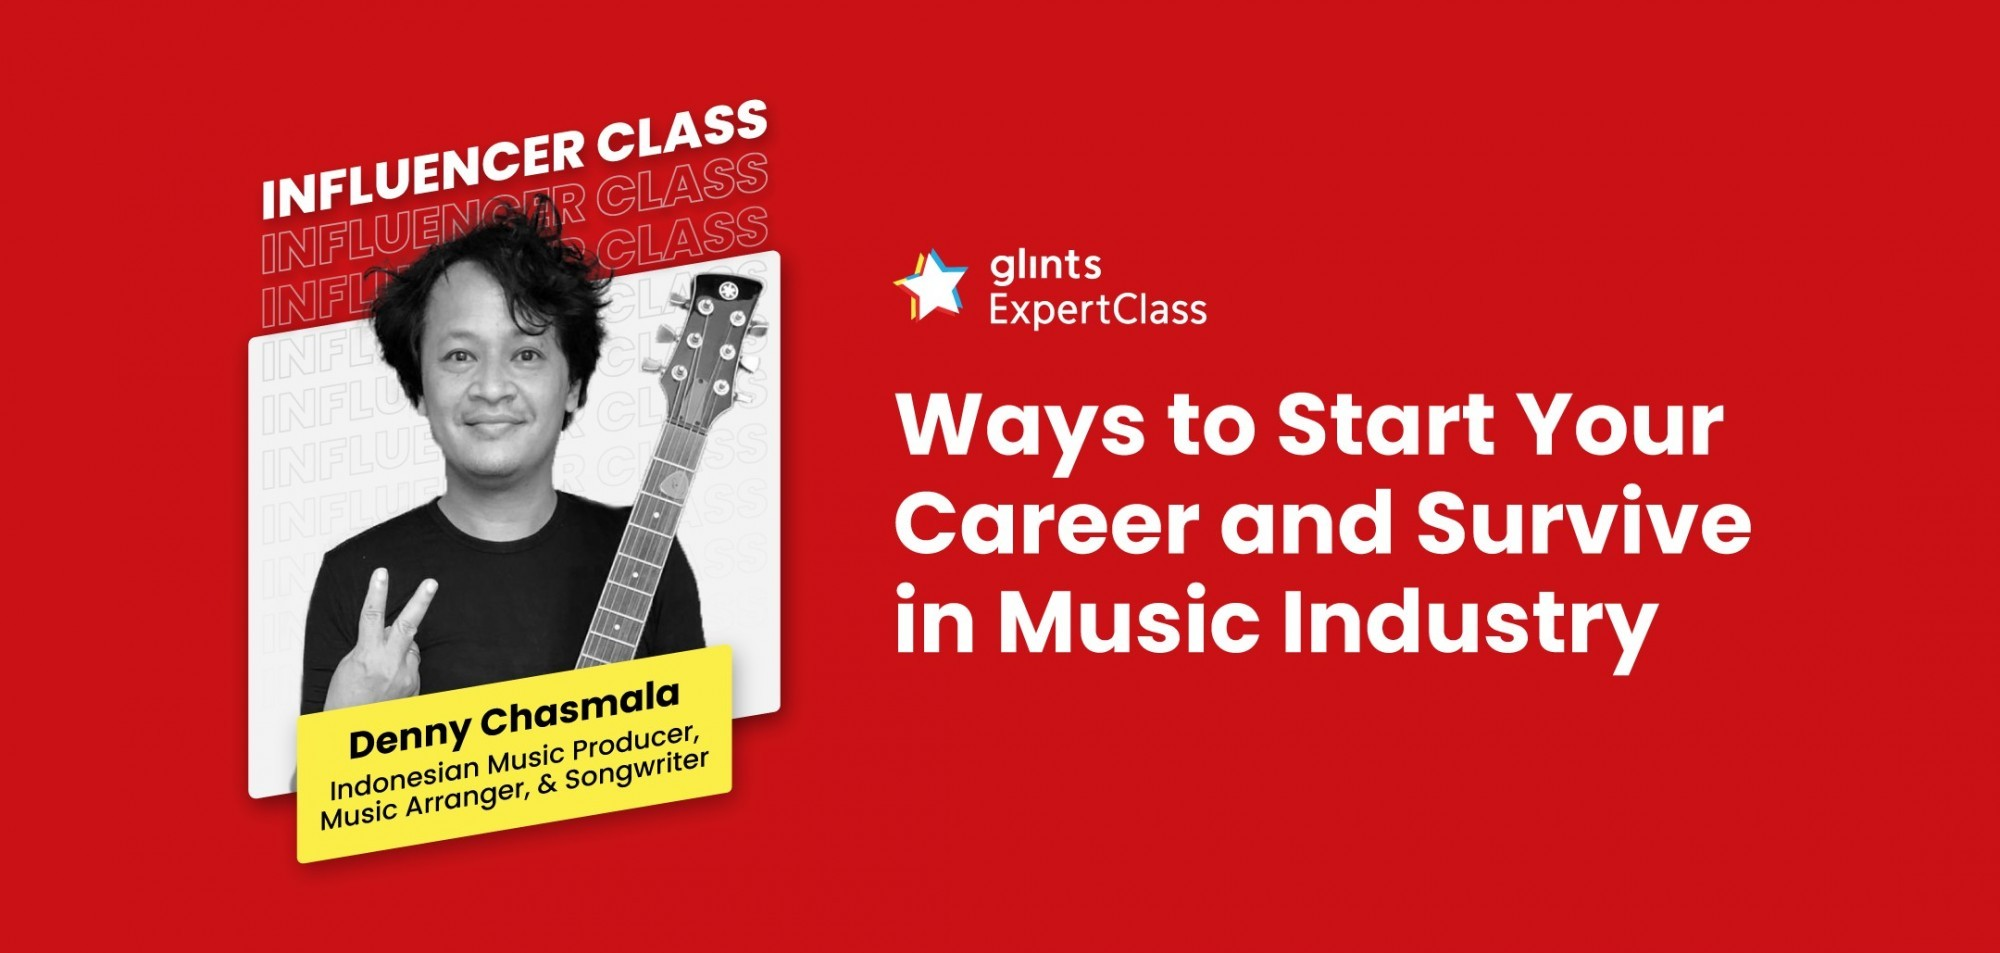 [Online Glints ExpertClass] Ways to Start Your Career and Survive in Music Industry